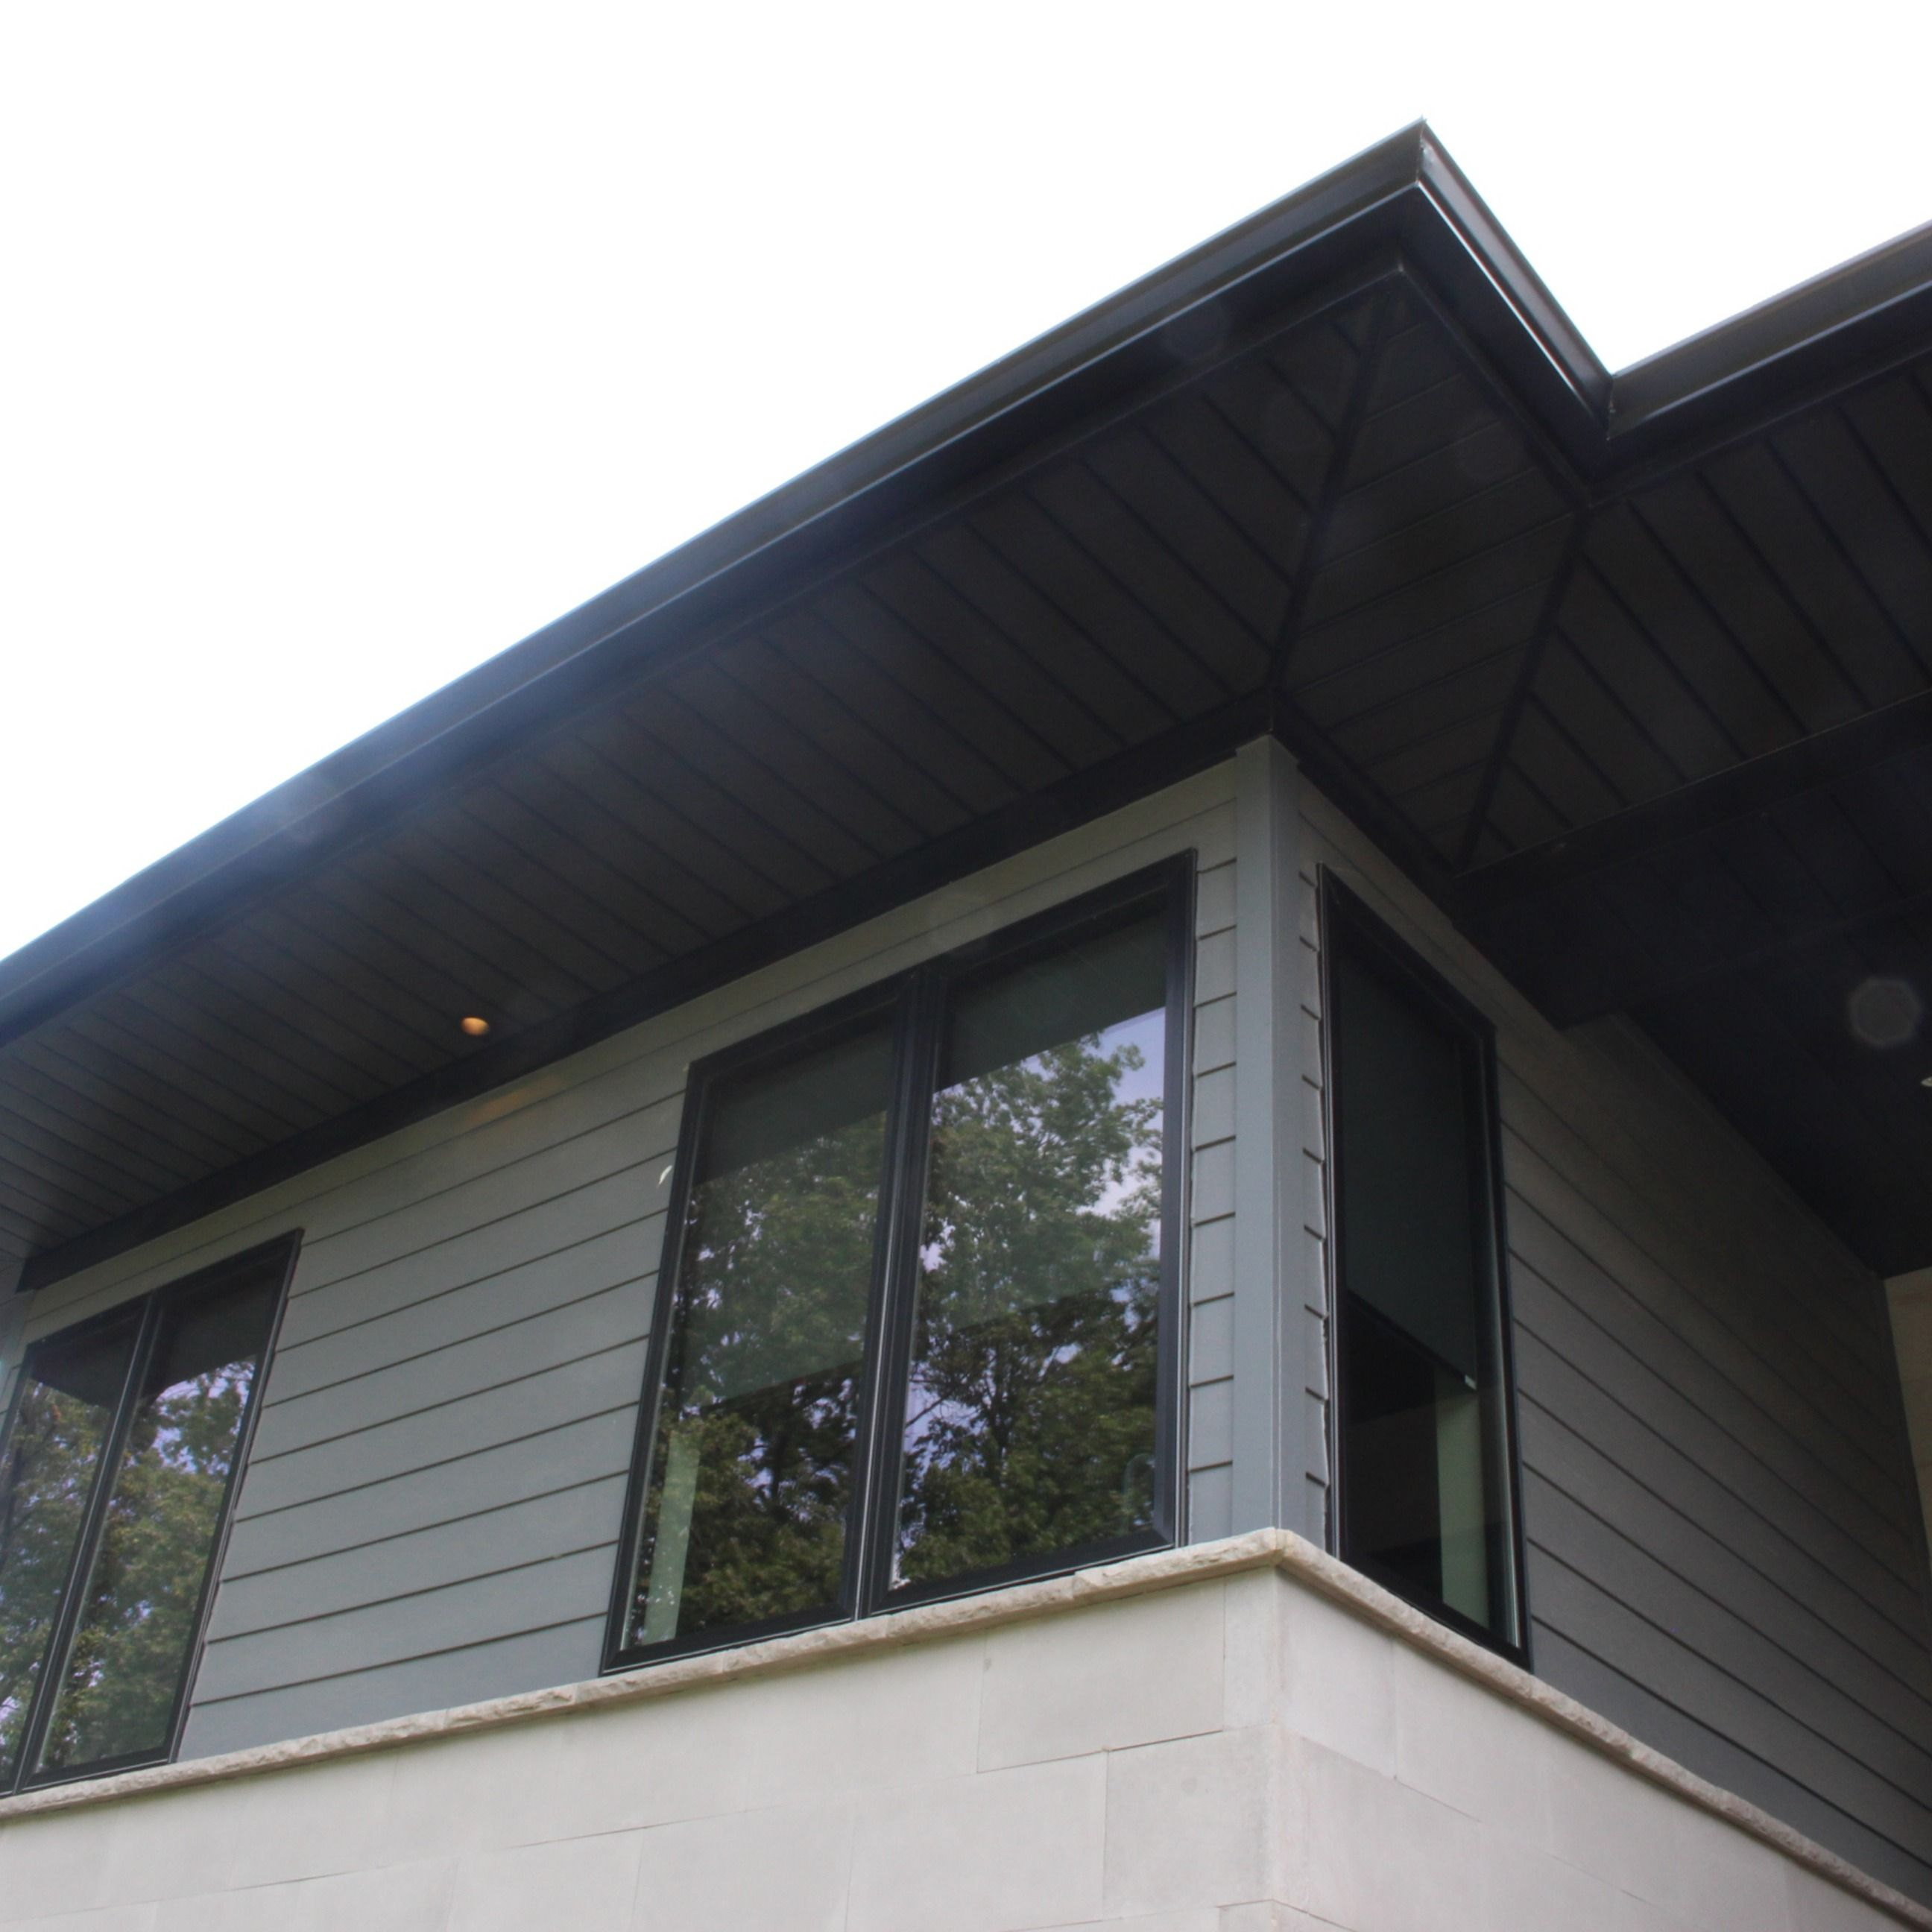 Night Gray James Hardie Siding St Louis Mo Hardie Siding James Hardie Siding Siding Options